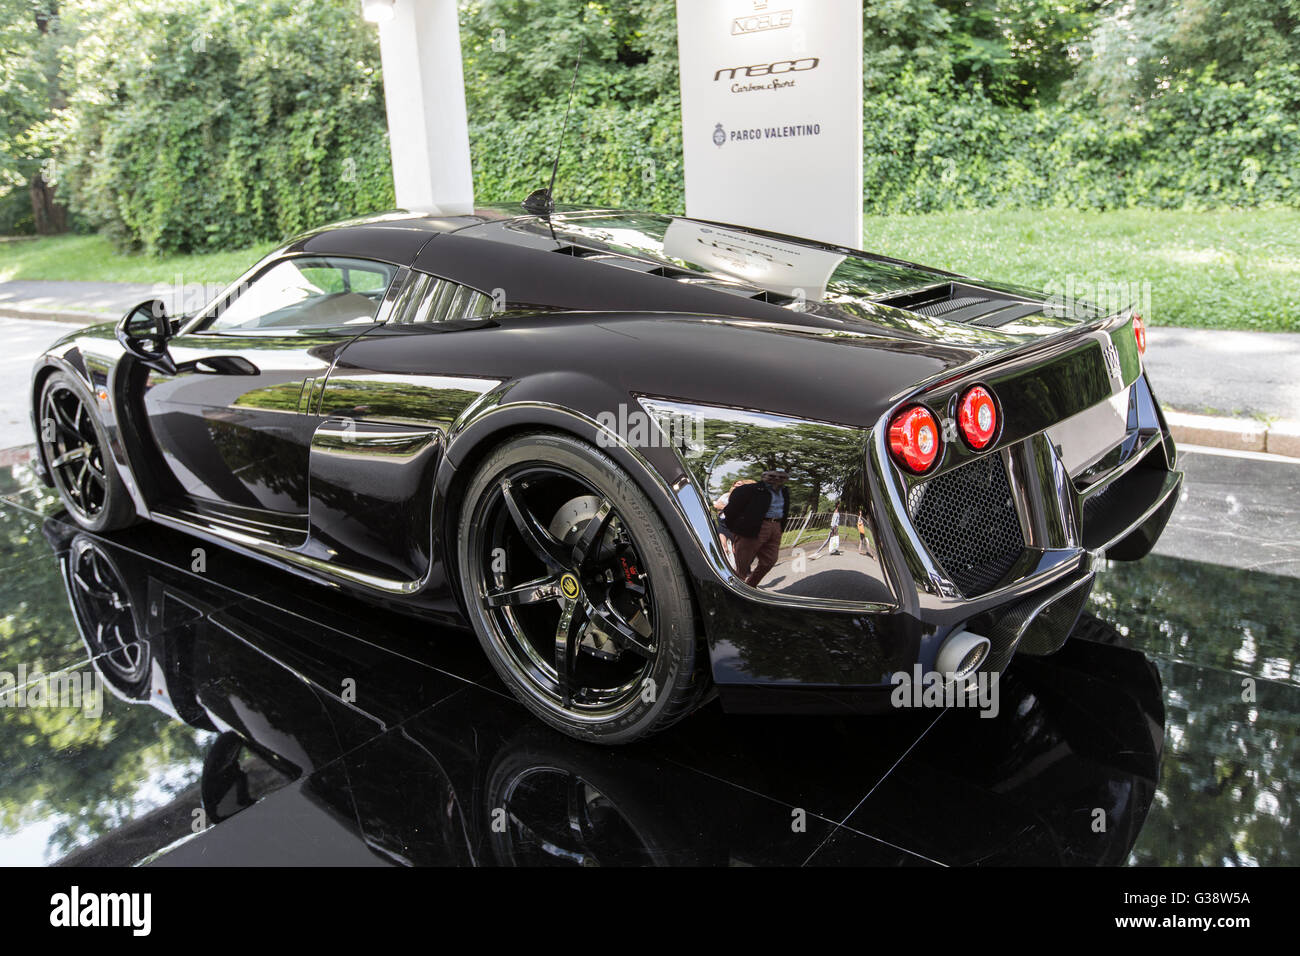 Turin, Italy. 09th June, 2016. Turin car show,from 8th to 12 th June 2016.Noble M600 Credit:  RENATO VALTERZA/Alamy - Stock Image